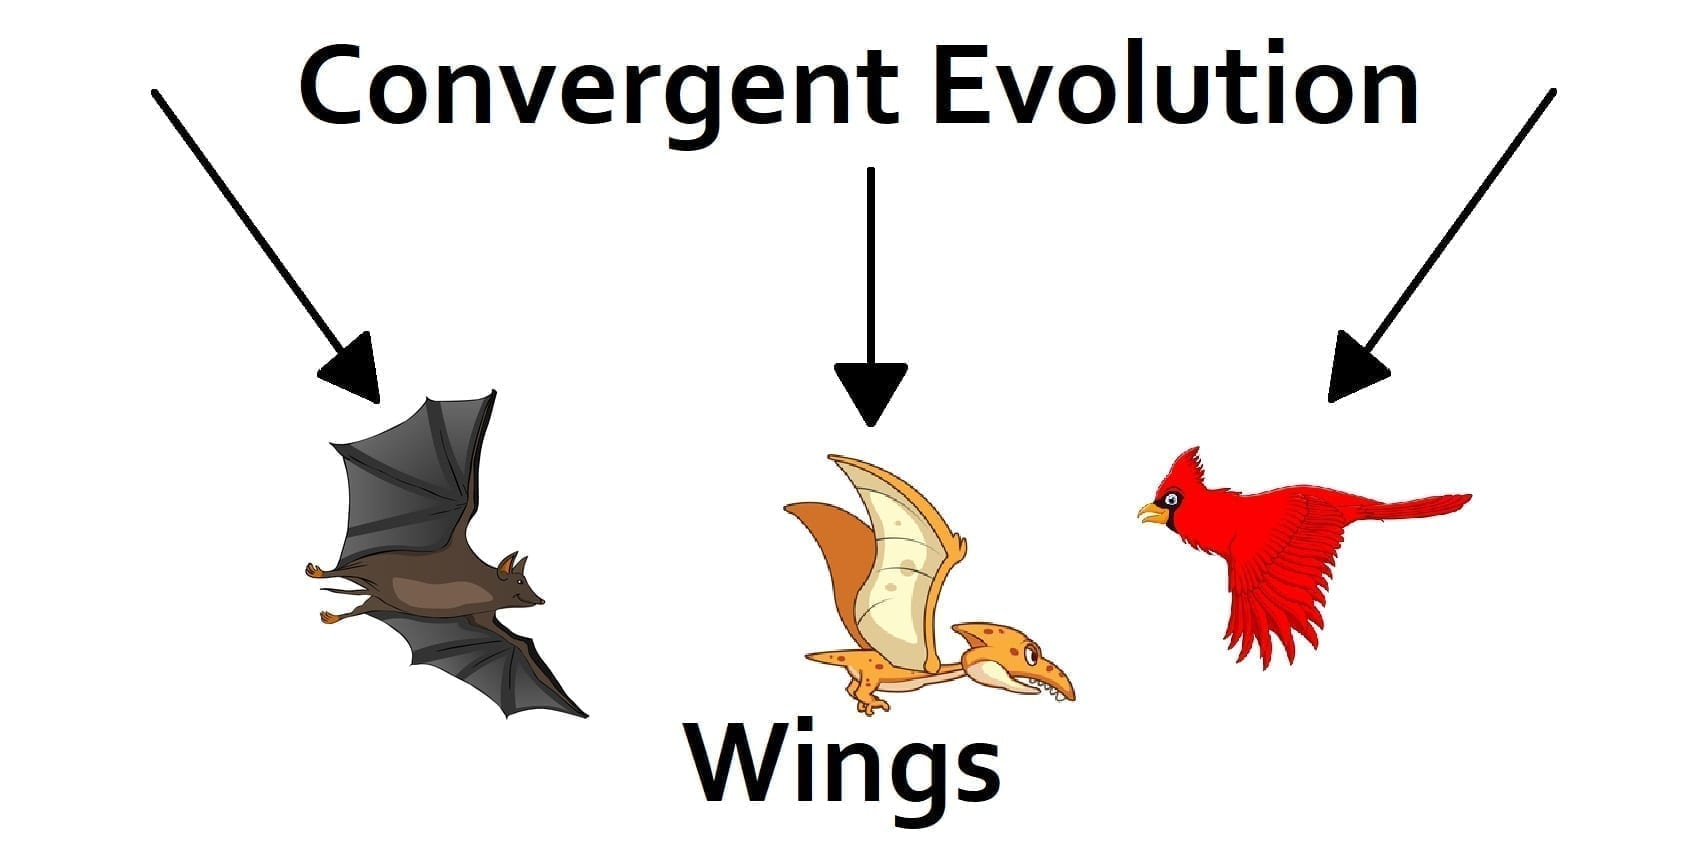 Convergent evolution diagram of flighted organisms